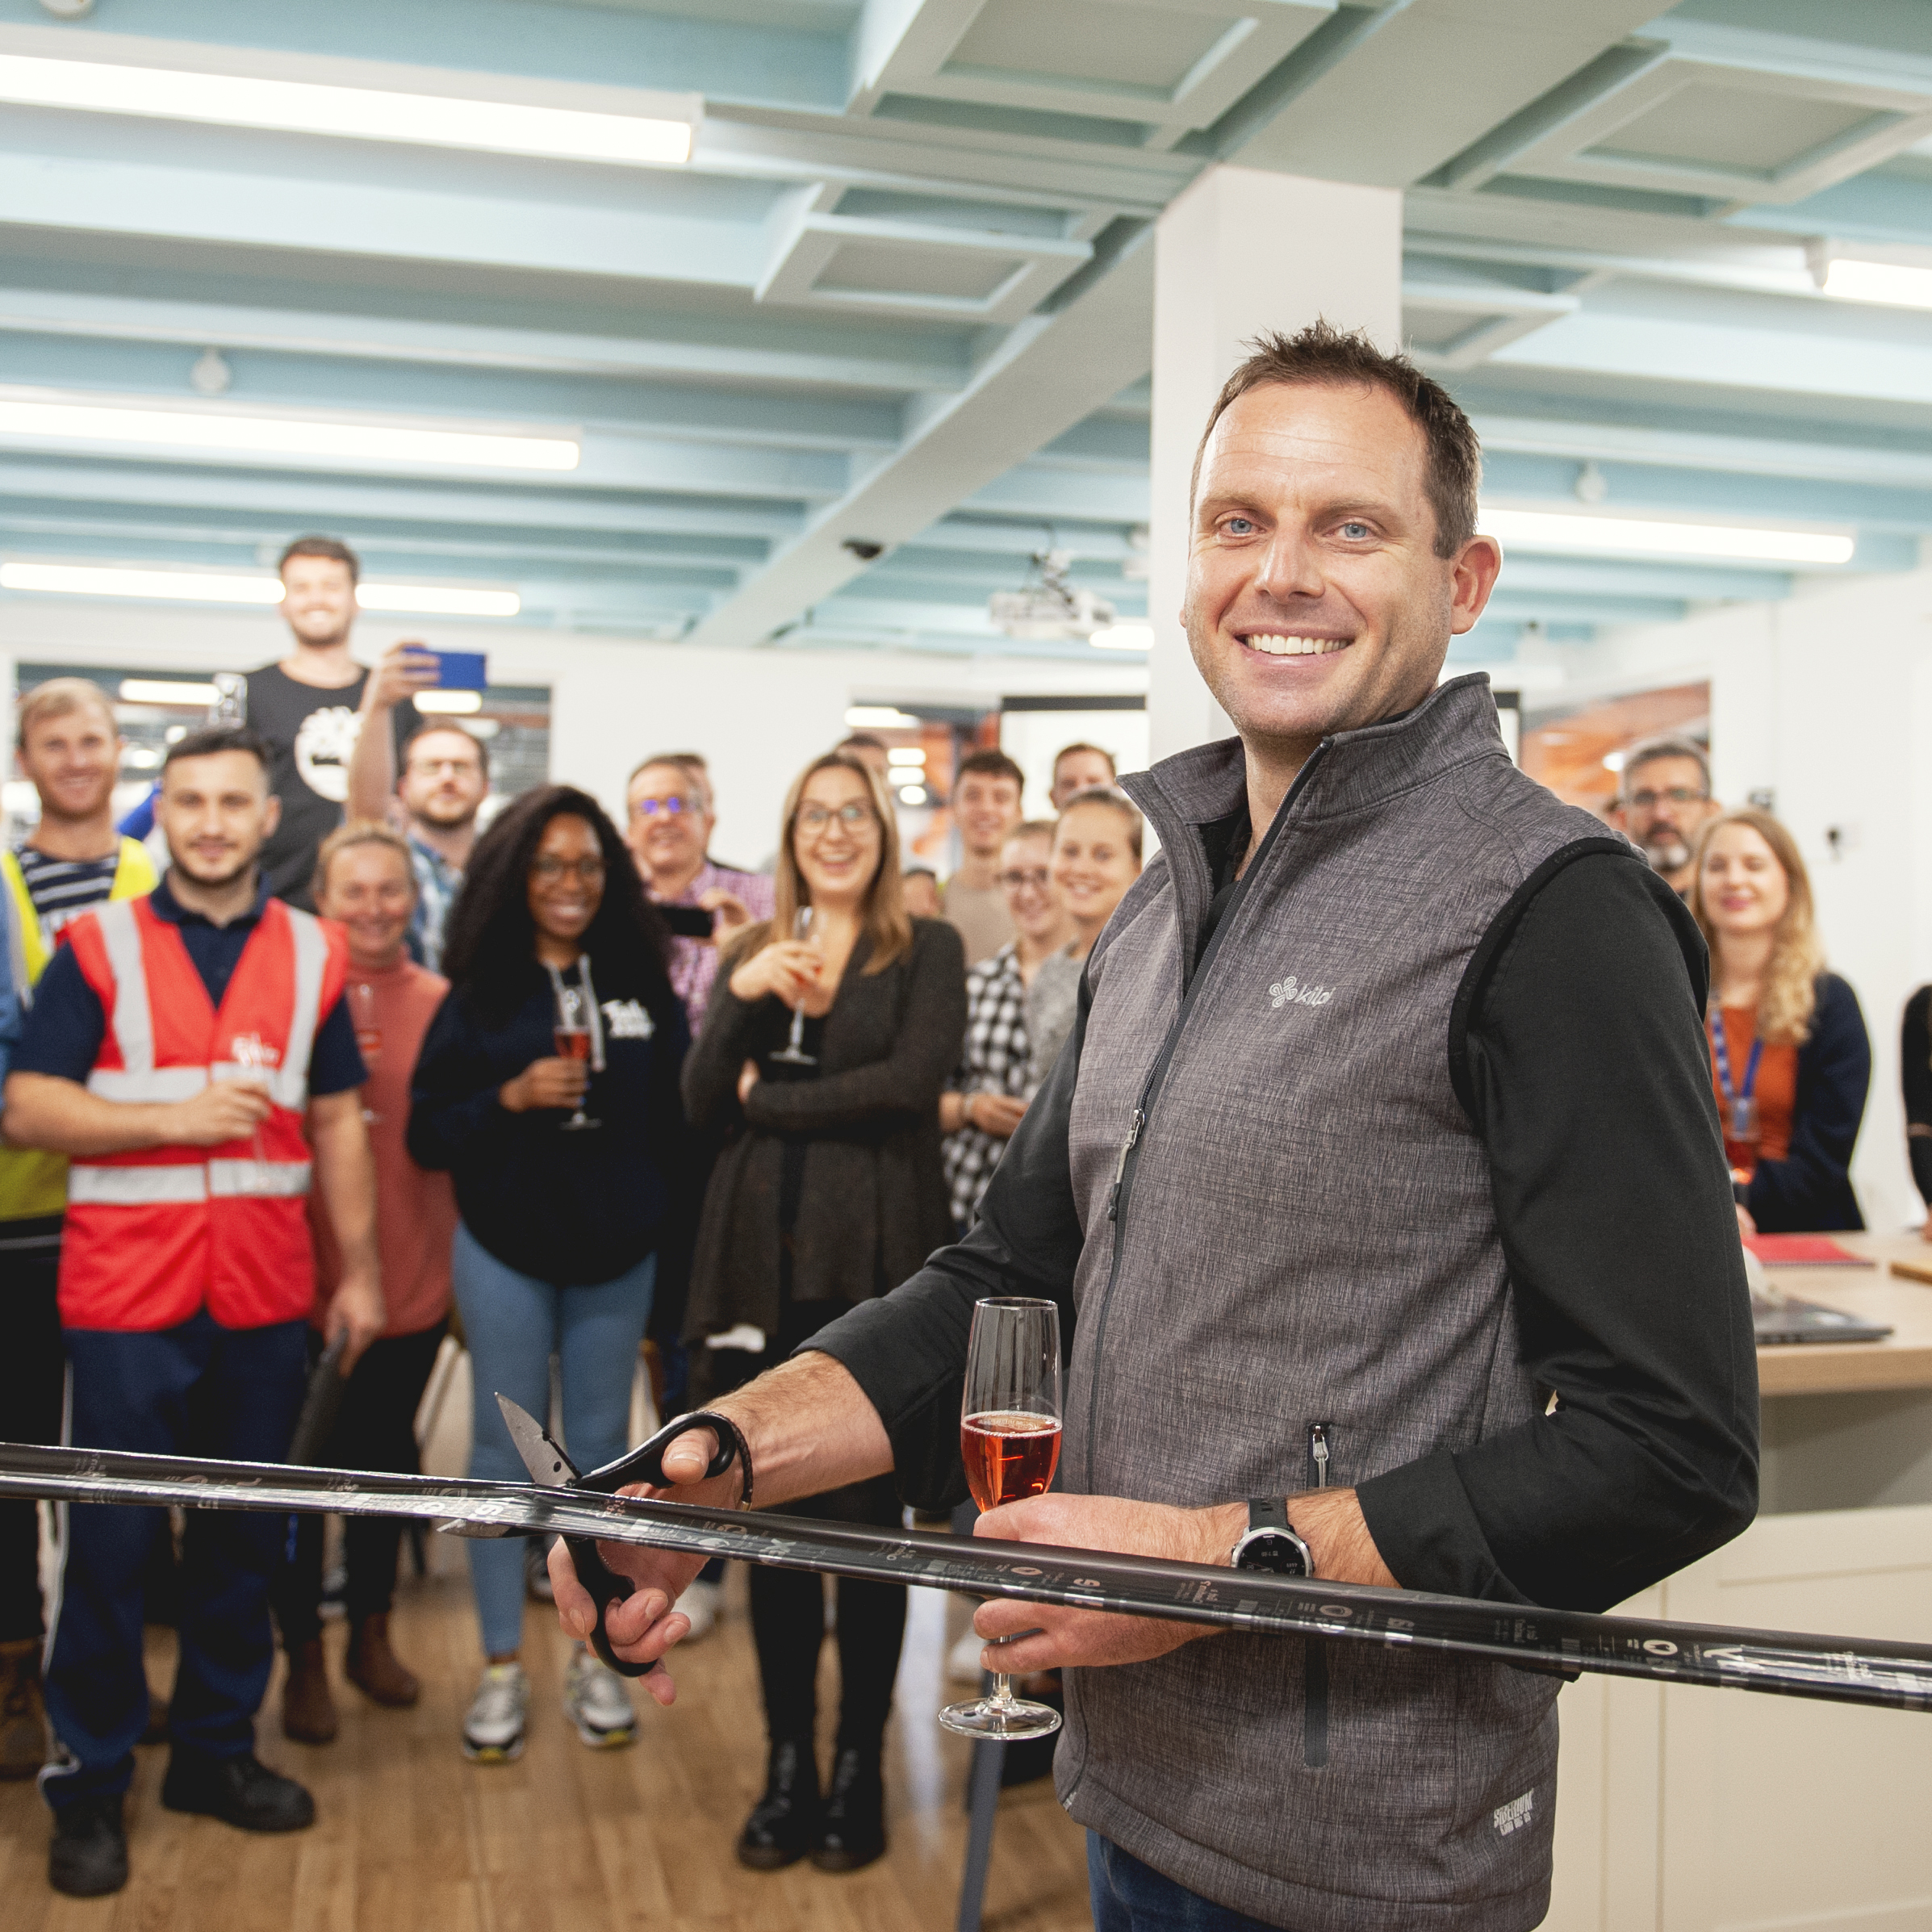 James, oficially opening our heathrow office expansion